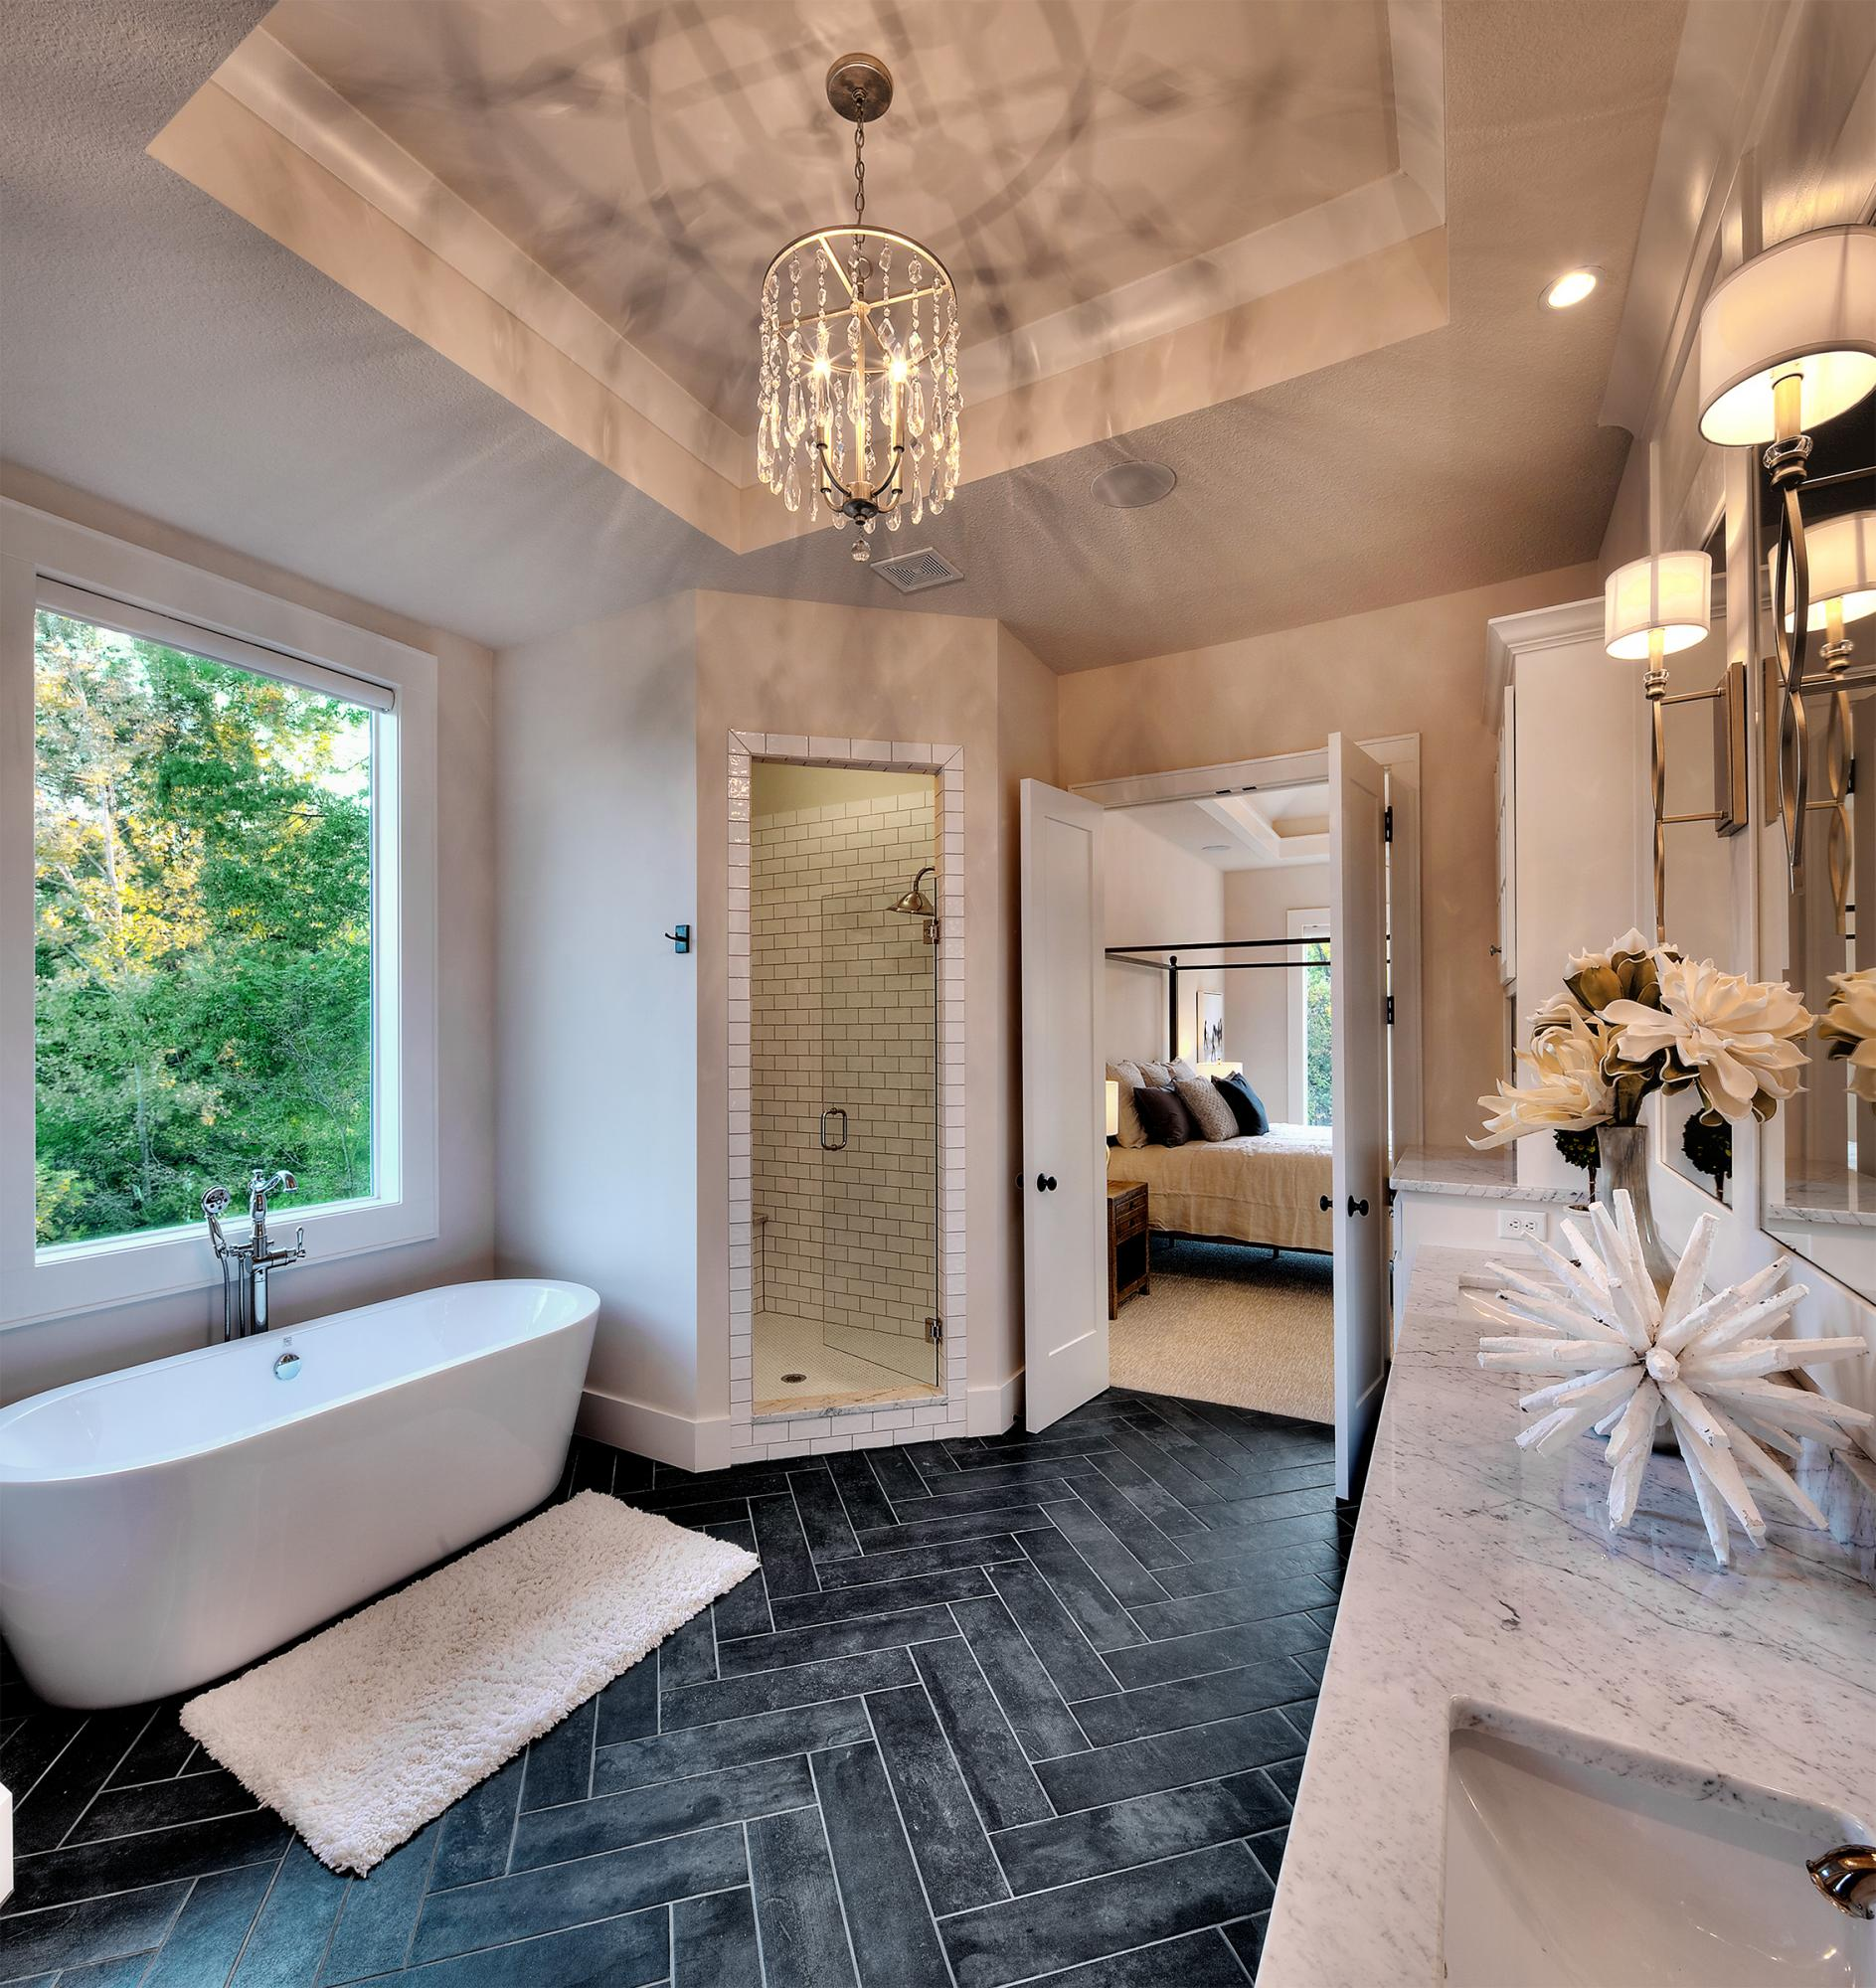 Kennedy Floor Covering Carpet Gallery: Photo Gallery